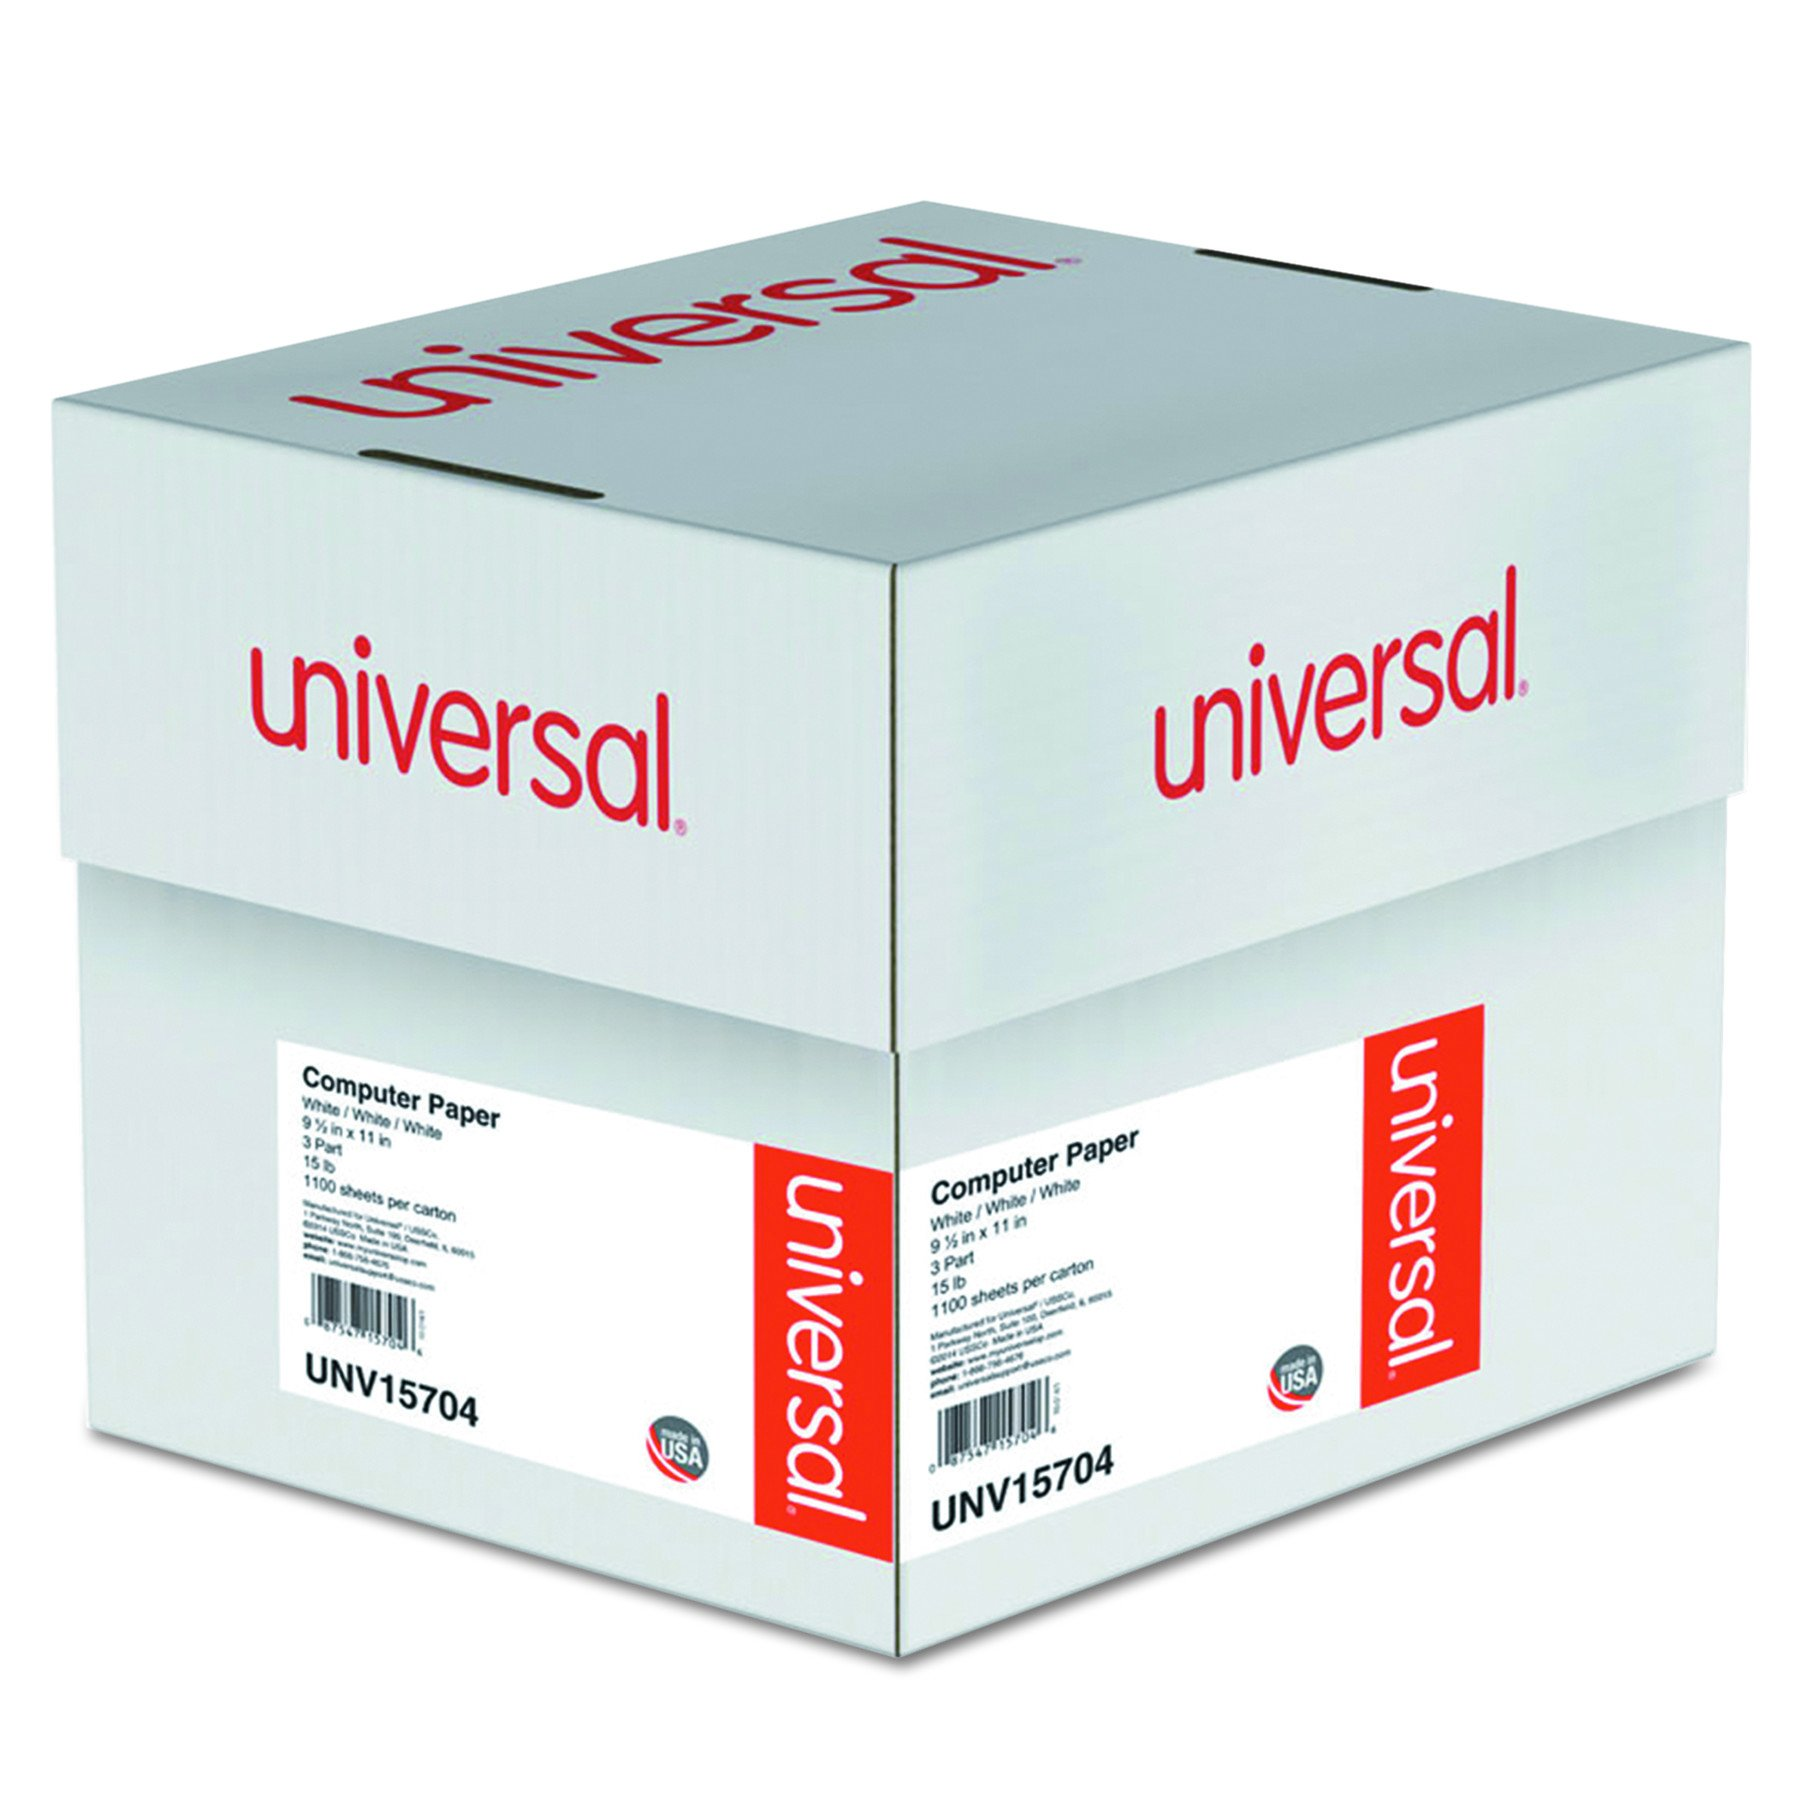 Universal Computer Paper, 3-Part Carbonless, 15lb, 9-1/2'' x 11'', White, 11'' 00 Sheets (15704) by Universal